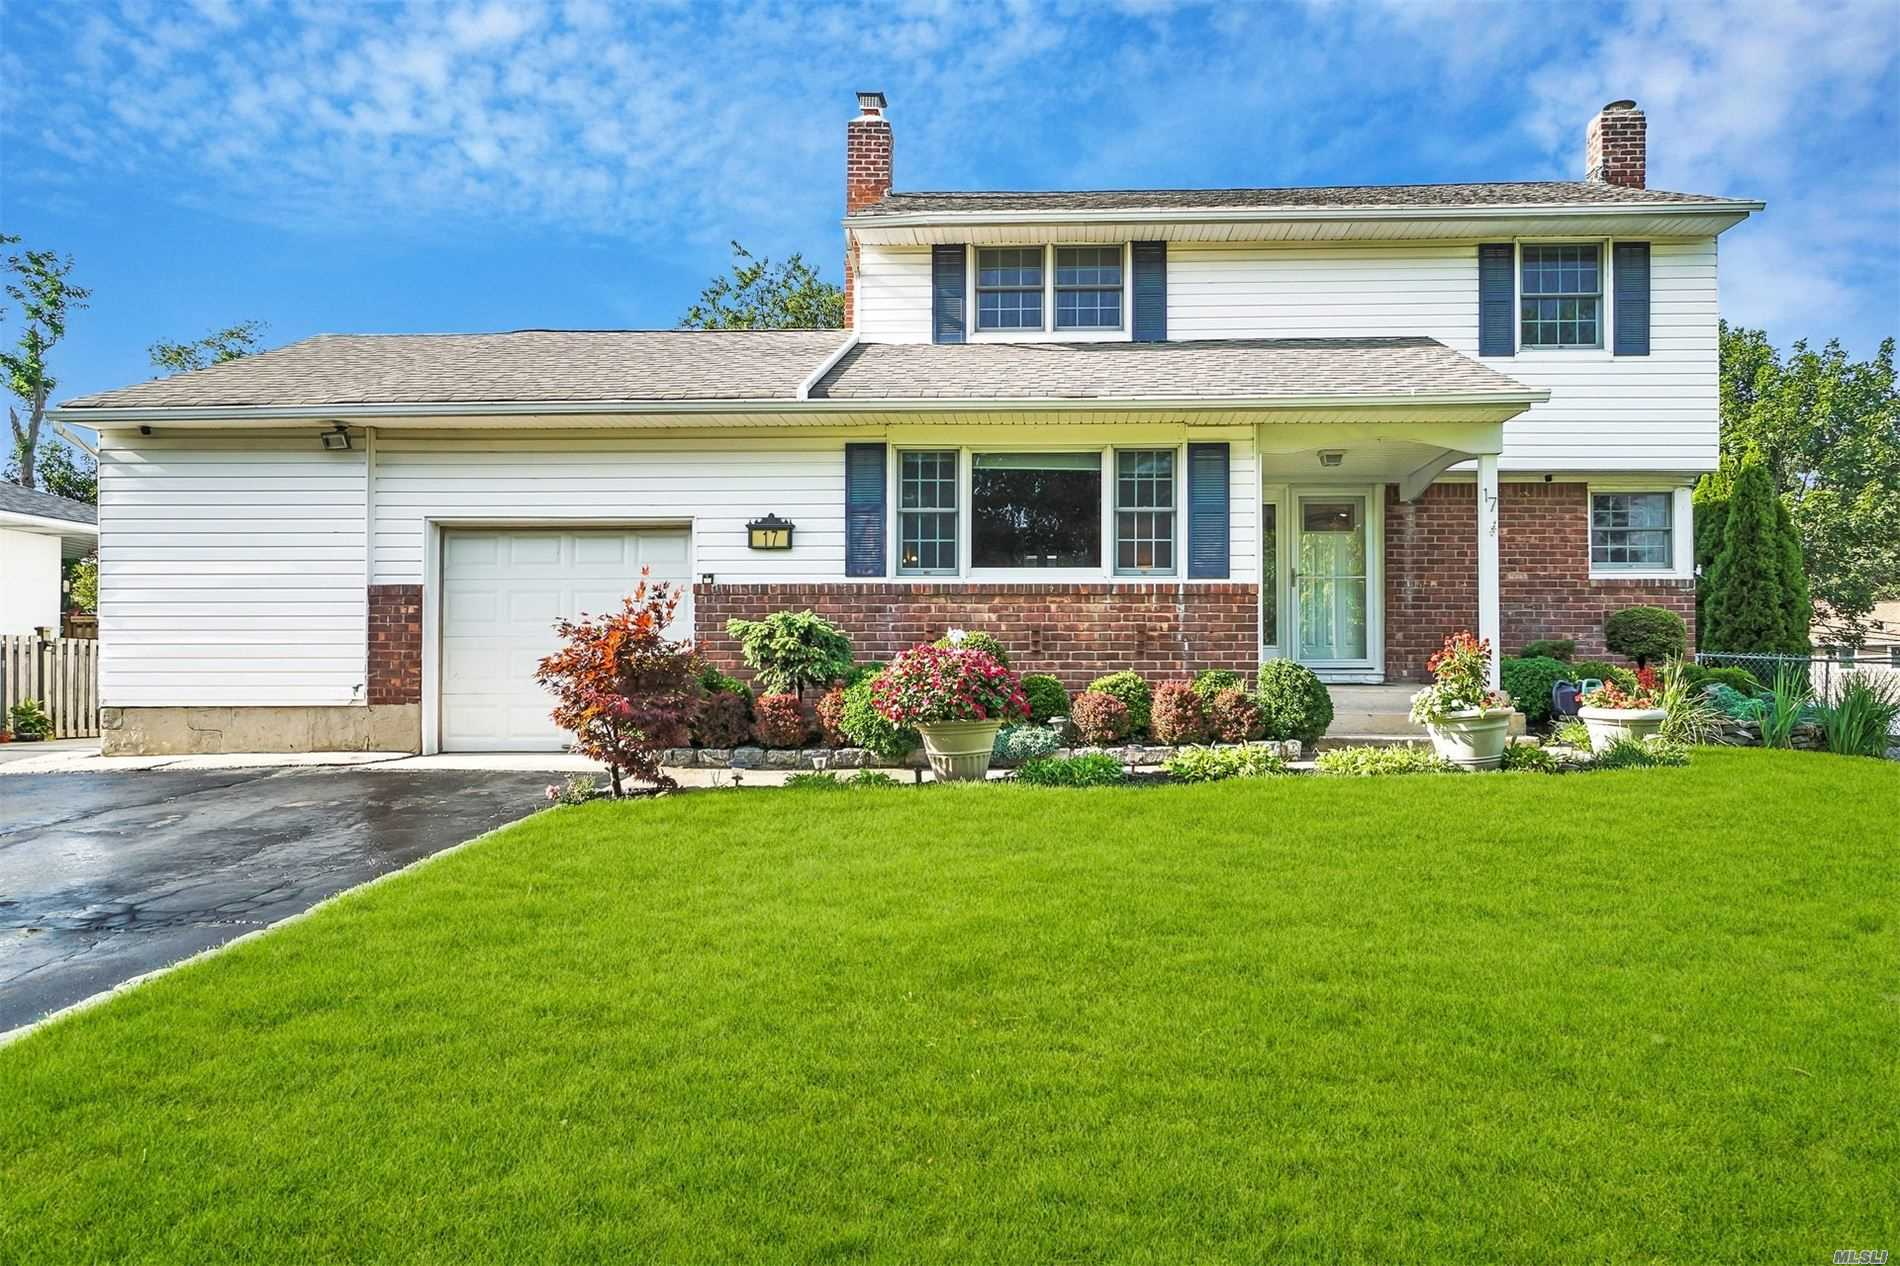 17 Regina Dr - Commack, New York